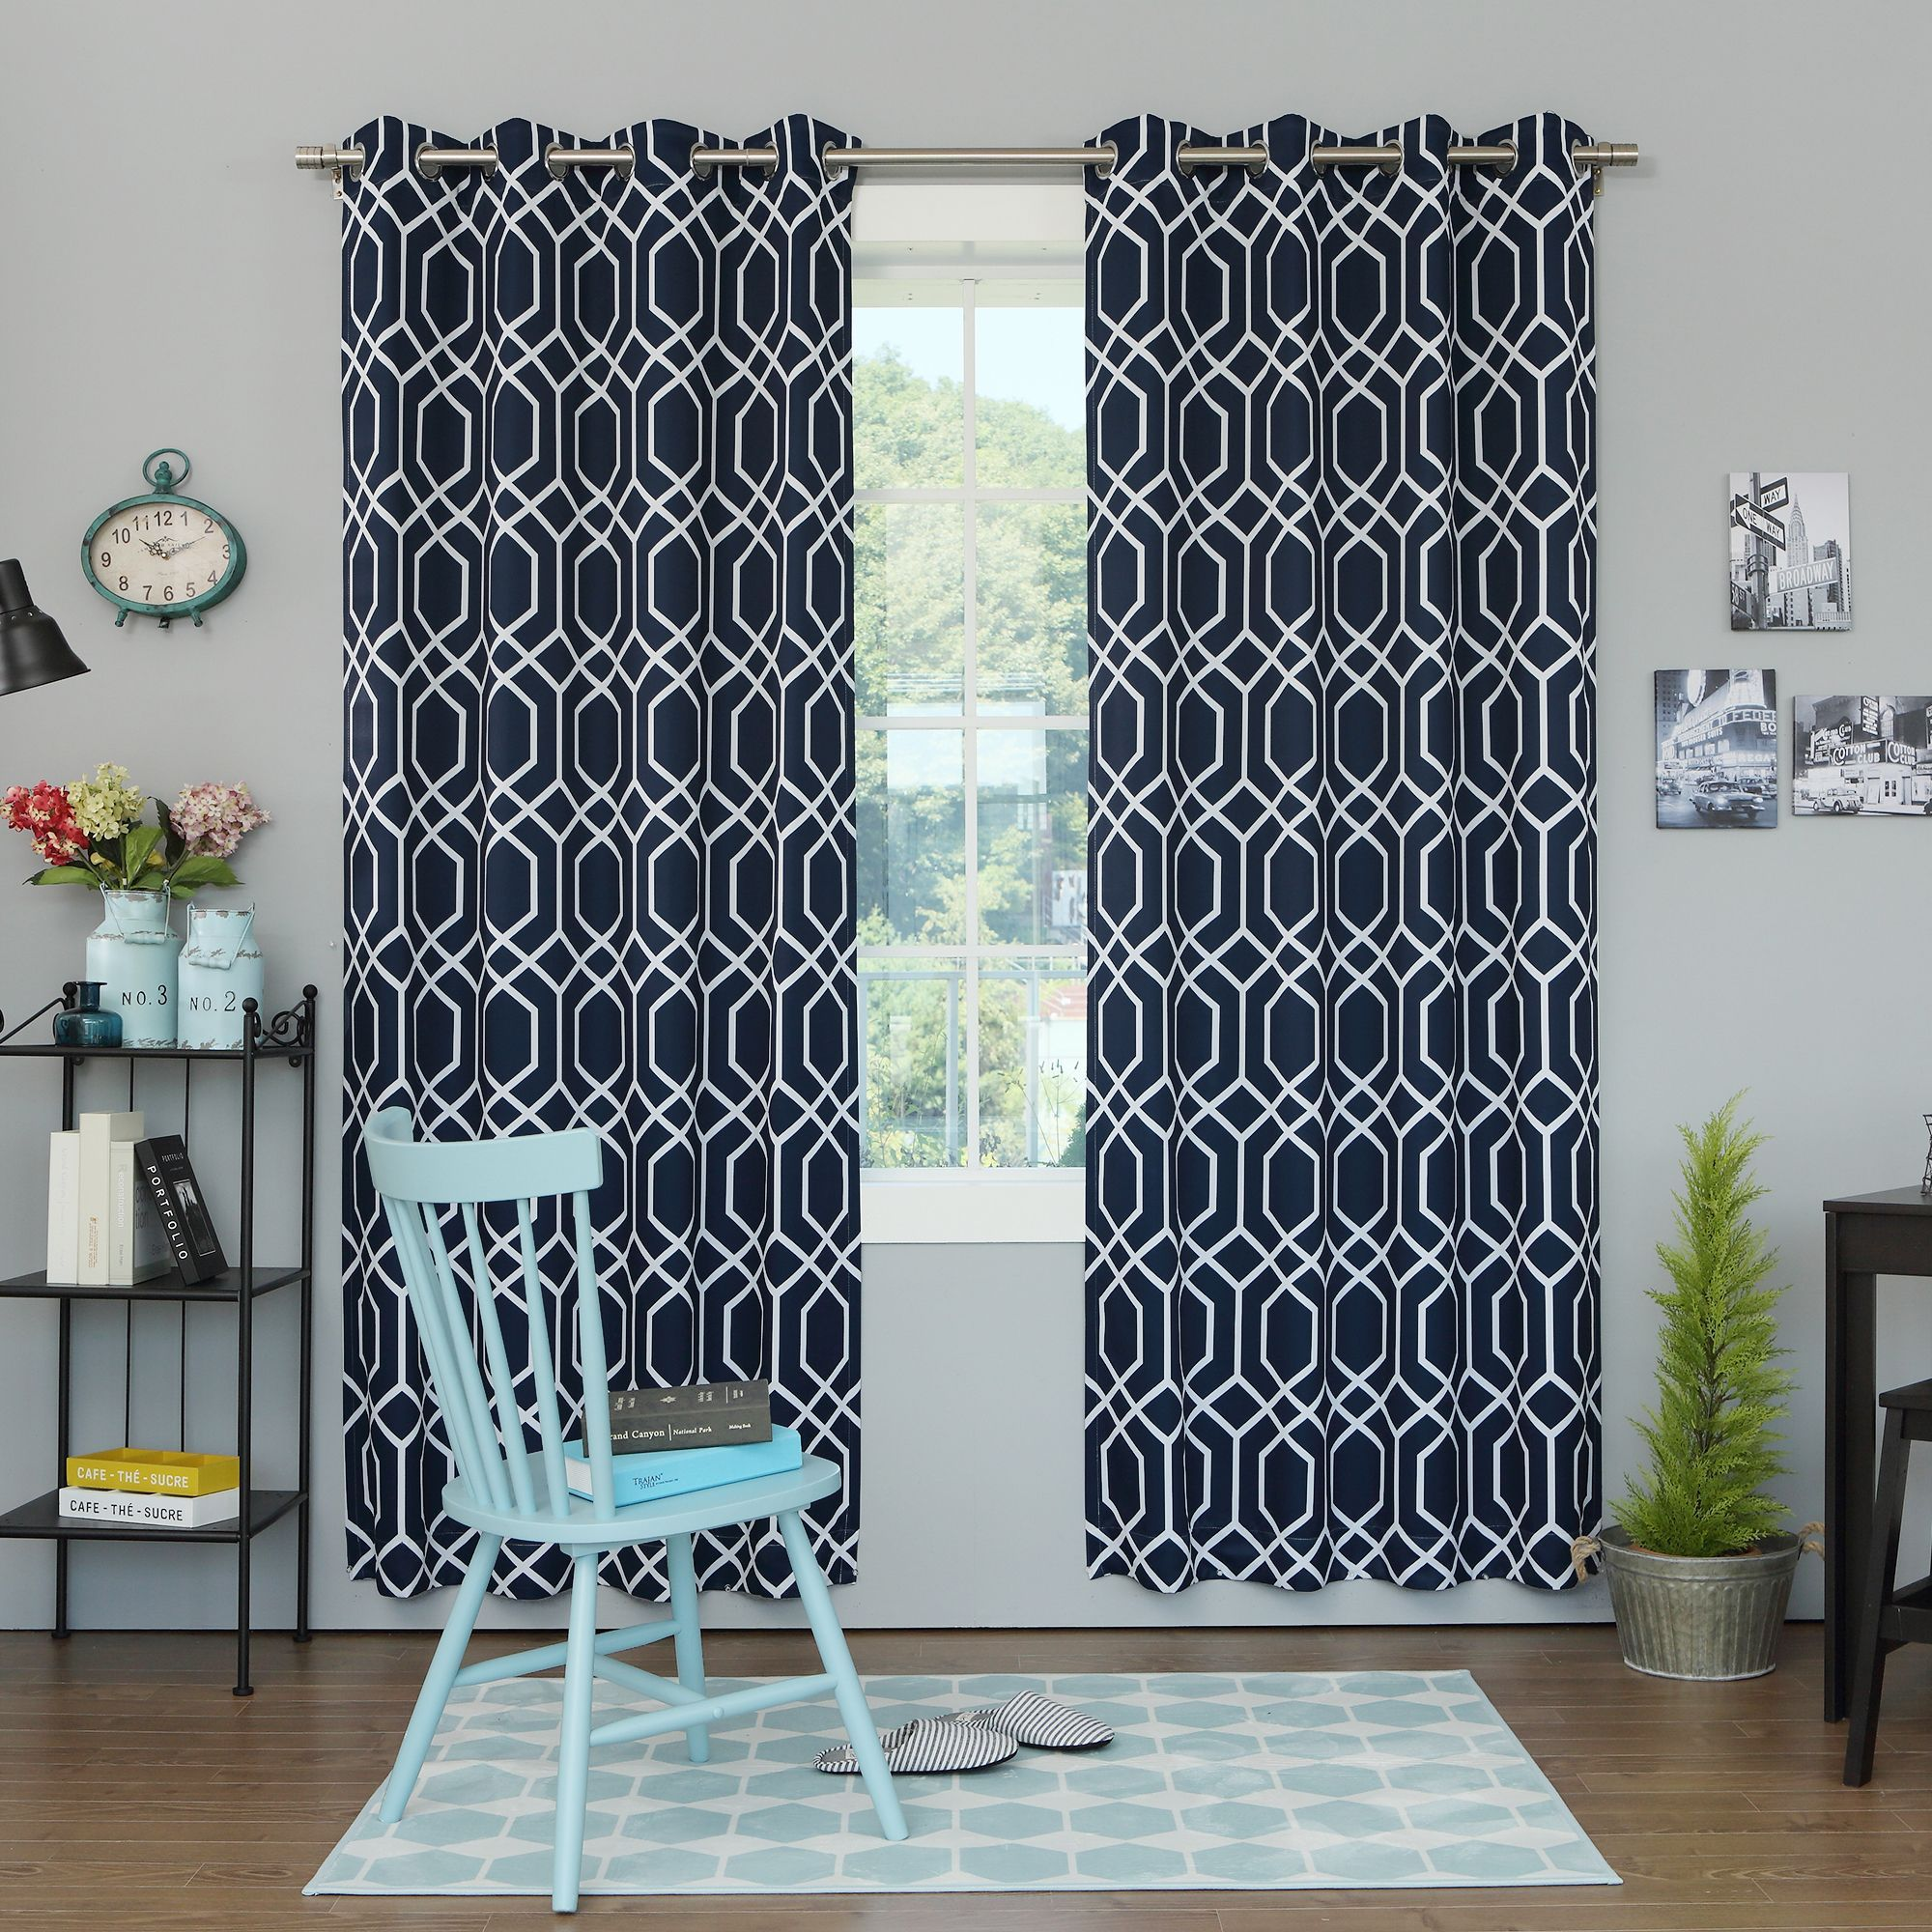 Curtain pair overstock shopping great deals on lights out curtains - Shop For Aurora Home Geometric Trellis Printed Room Darkening Curtain Panel Pair Get Free Delivery At Your Online Home Decor Outlet Store